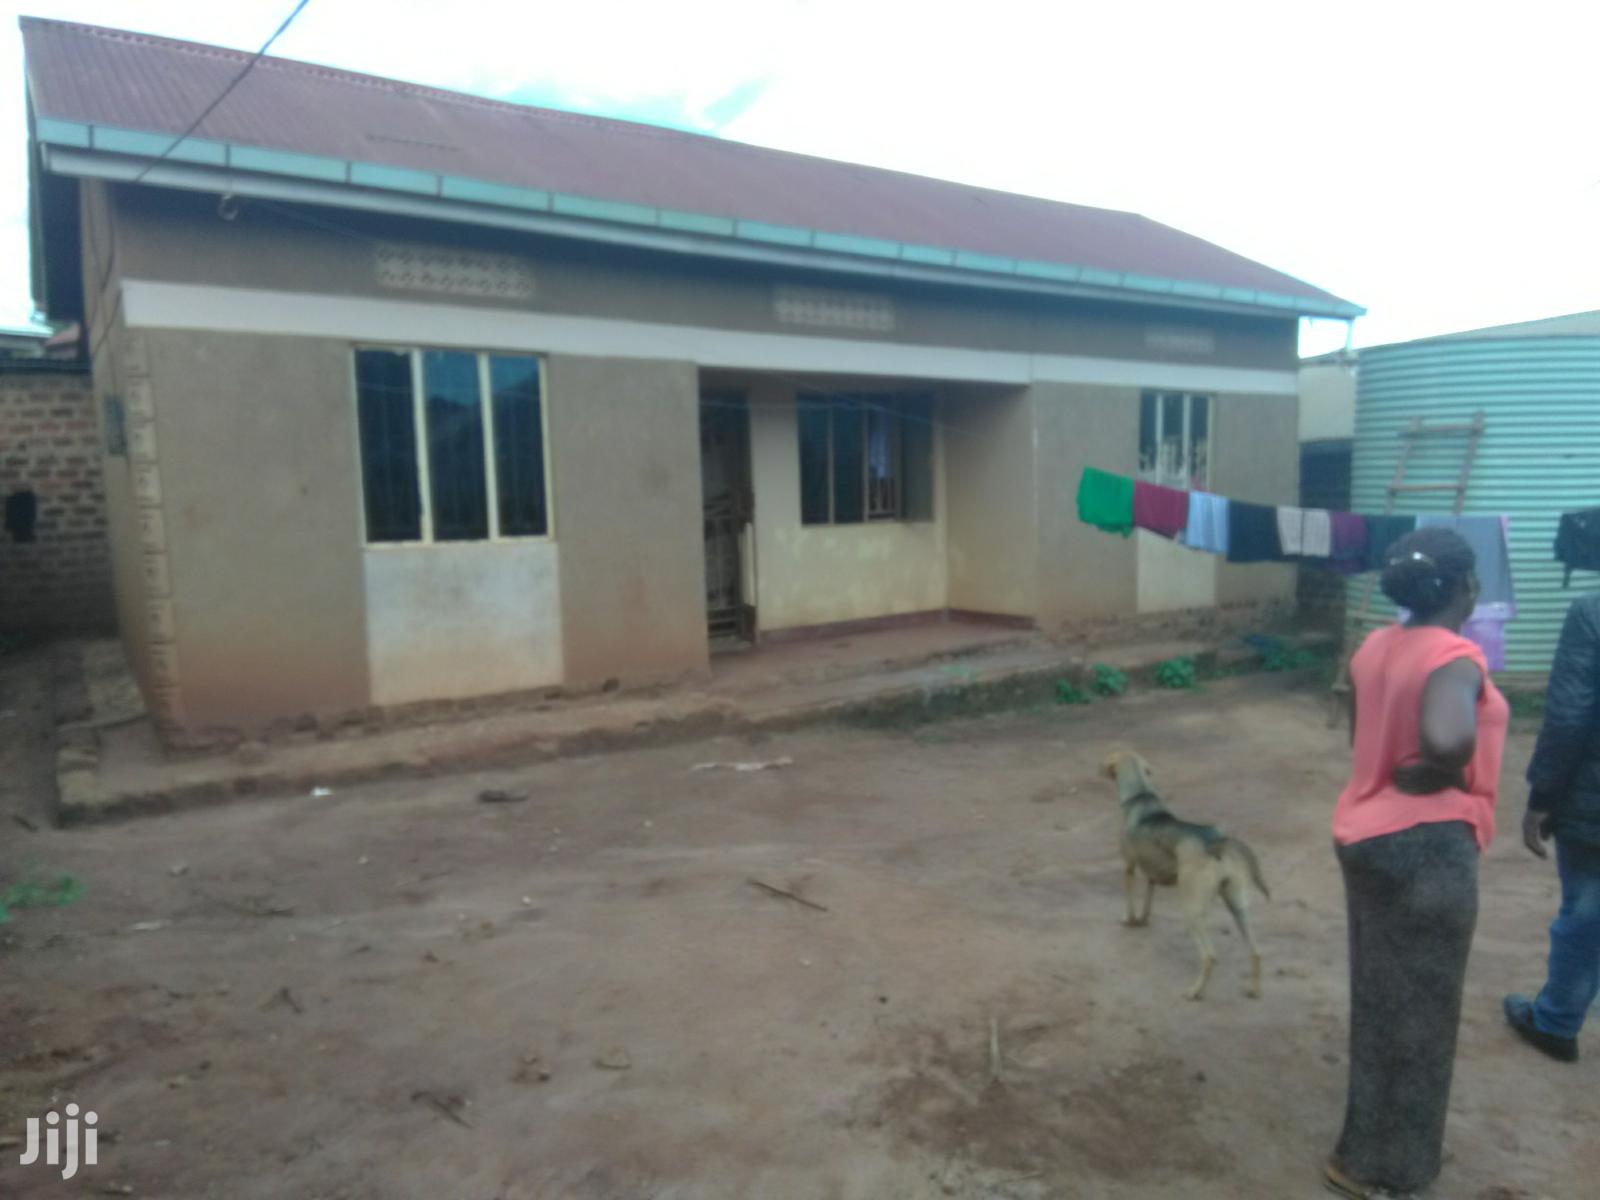 Very Specious Fancy Home On Quicksale In Namasuba Ndeje In Well Fence